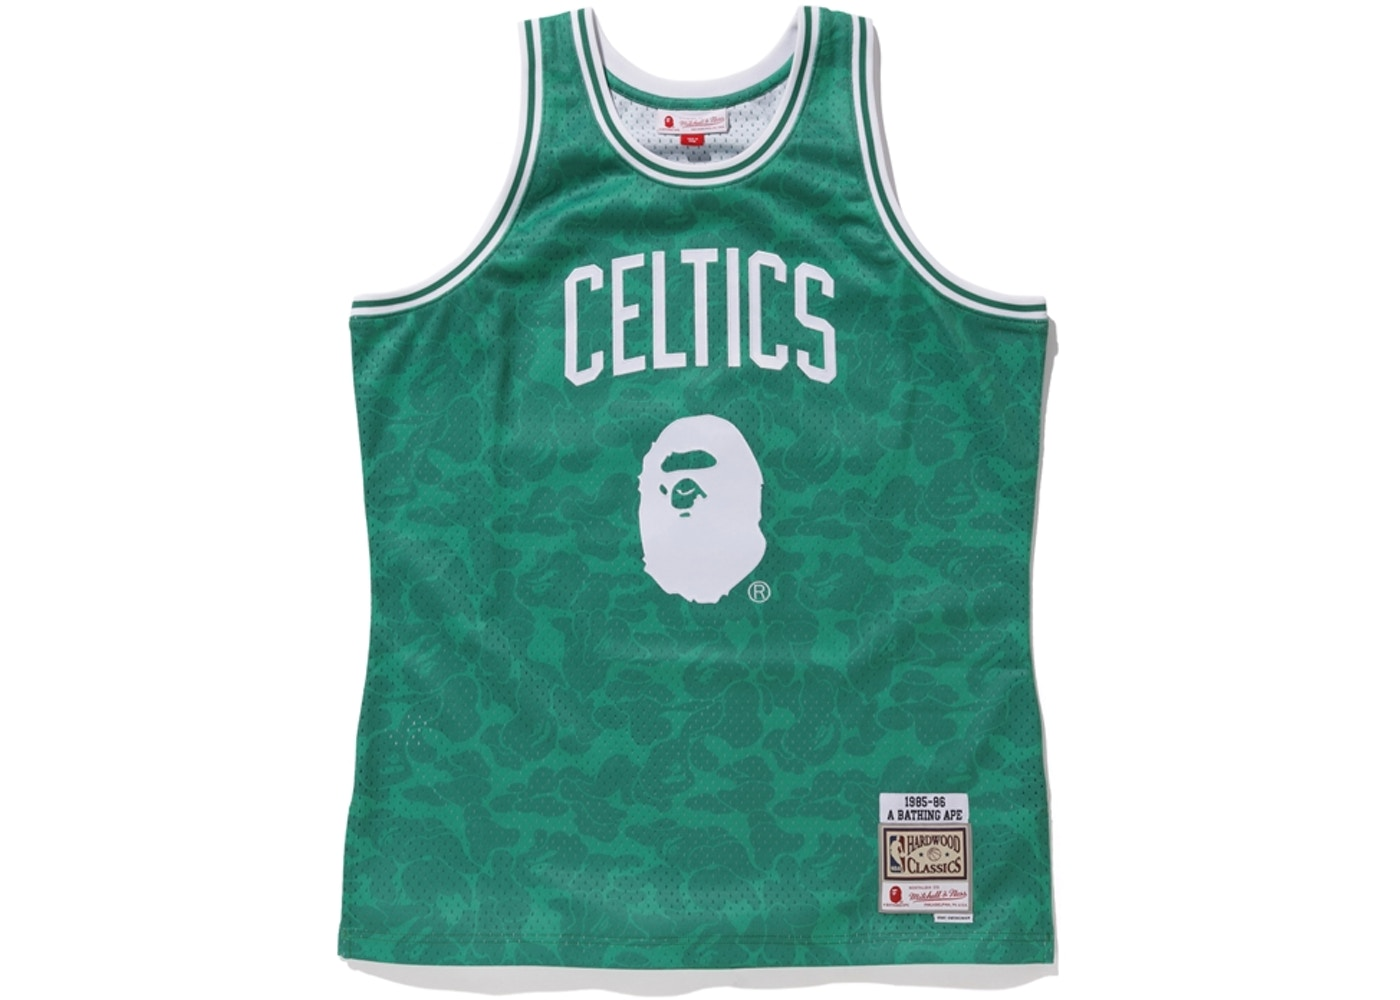 finest selection 1b4cc e6f70 BAPE x Mitchell & Ness Celtics ABC Basketball Swingman Jersey Green